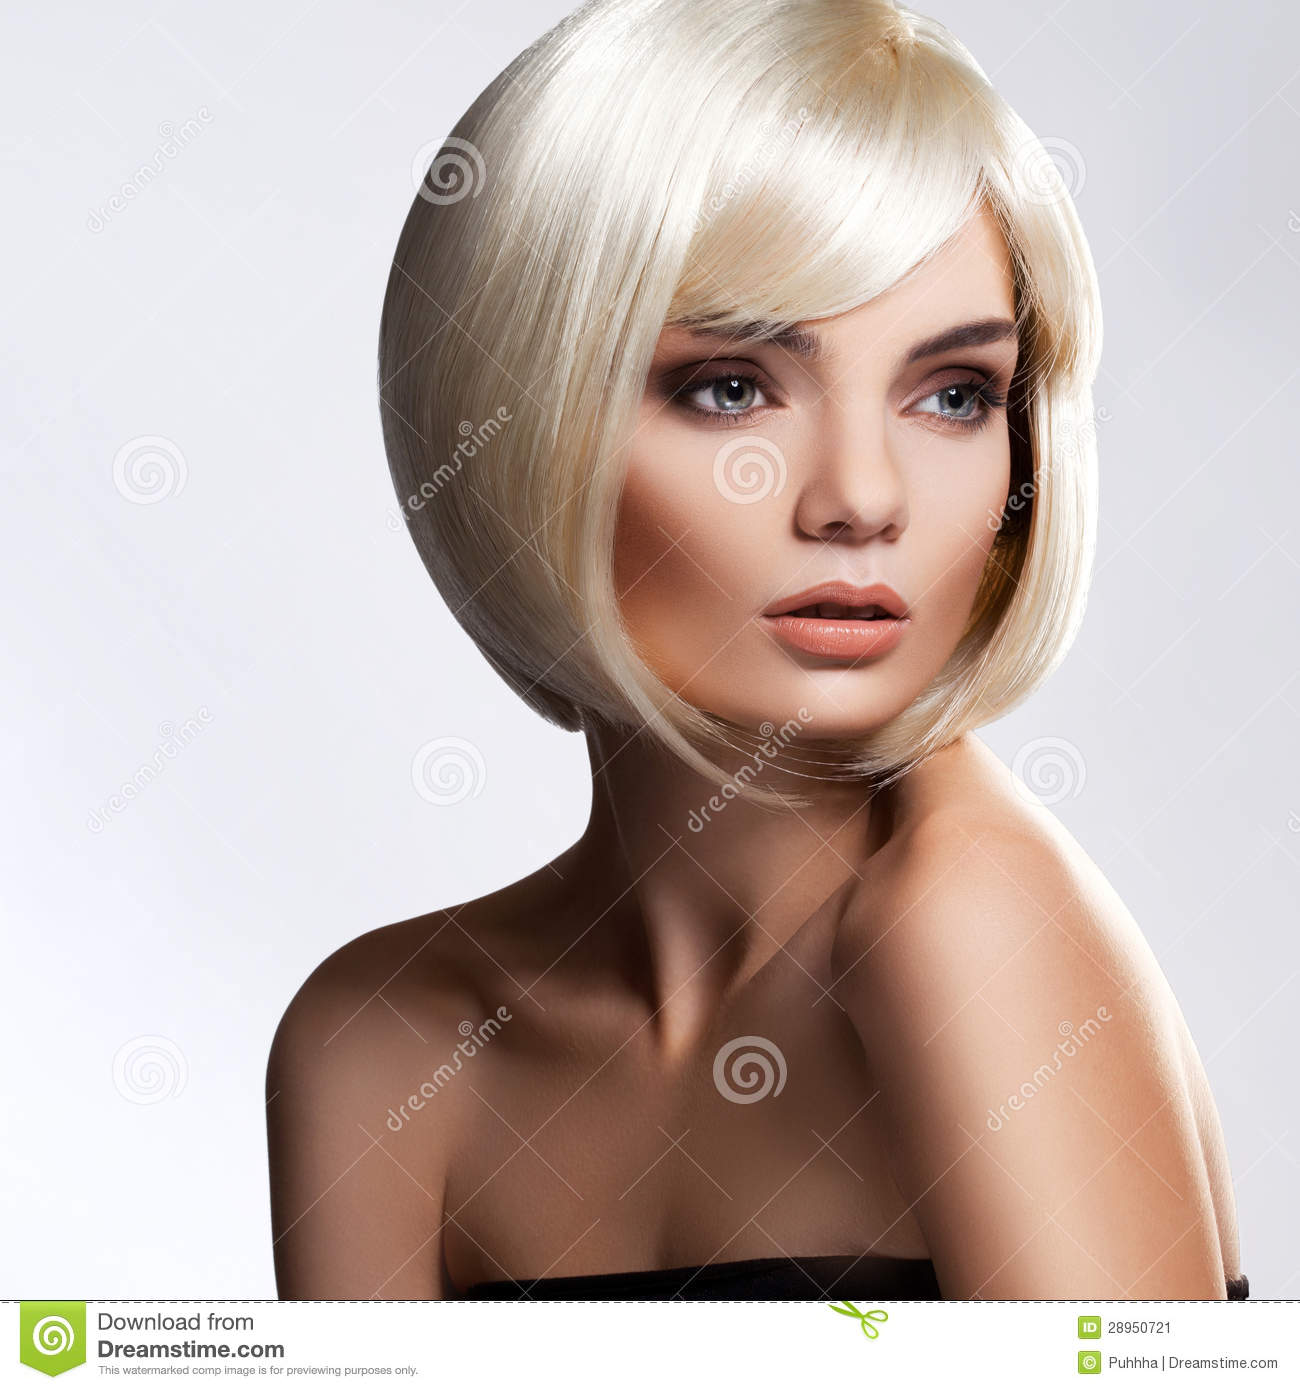 Blond Bob Short Blonde Hair High Quality Image Stock Image Image 28950721